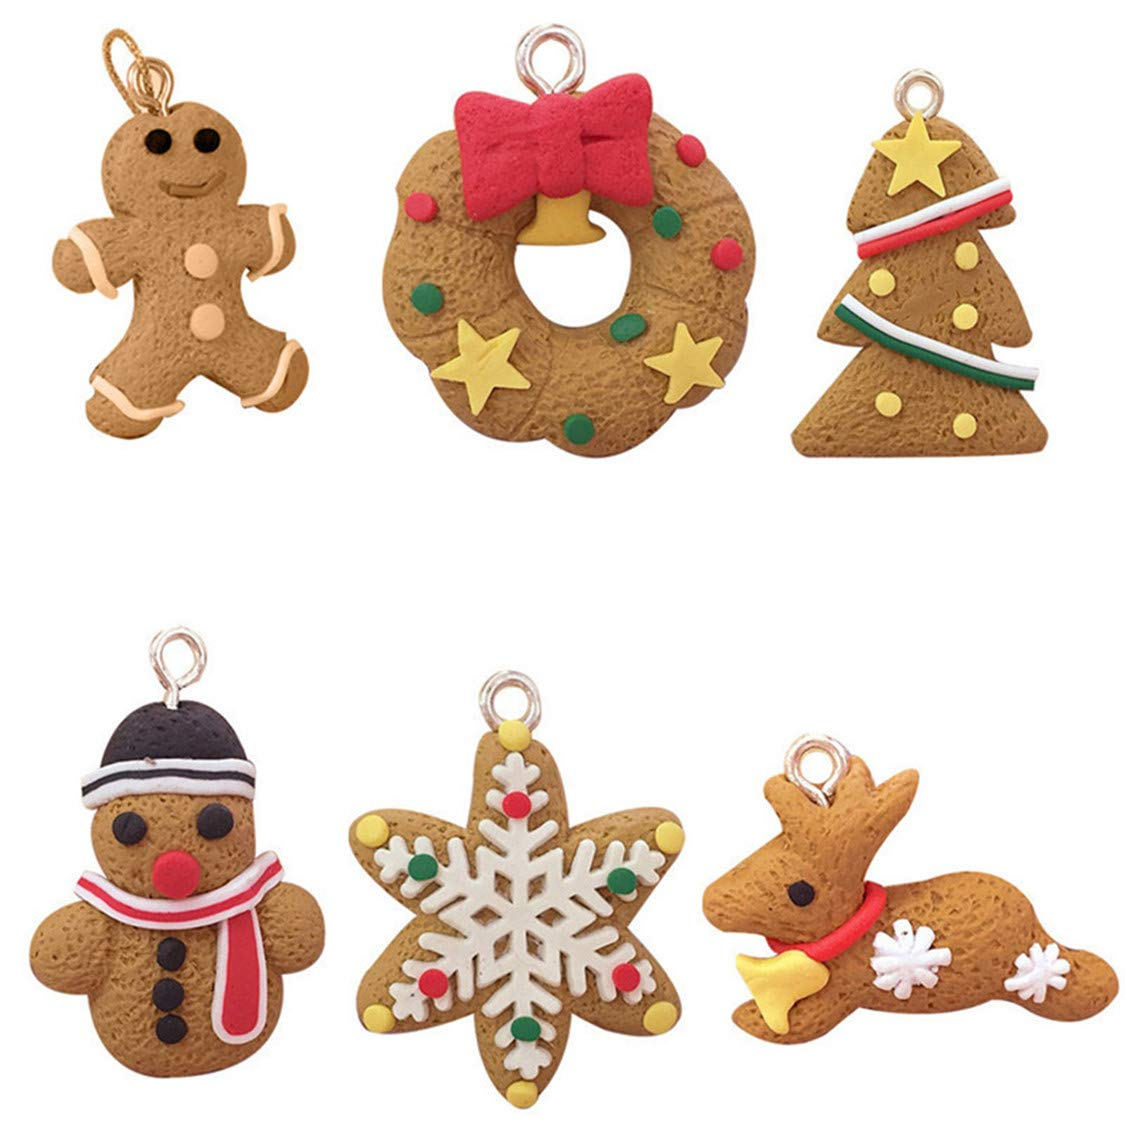 Gingerbread Christmas Ornaments Gingerbread Man Hanging Christmas Tree Ornaments For Holiday Kitchen Decor Christmas Tree Hanging Decorations Holiday Party Decor B Walmart Com Walmart Com